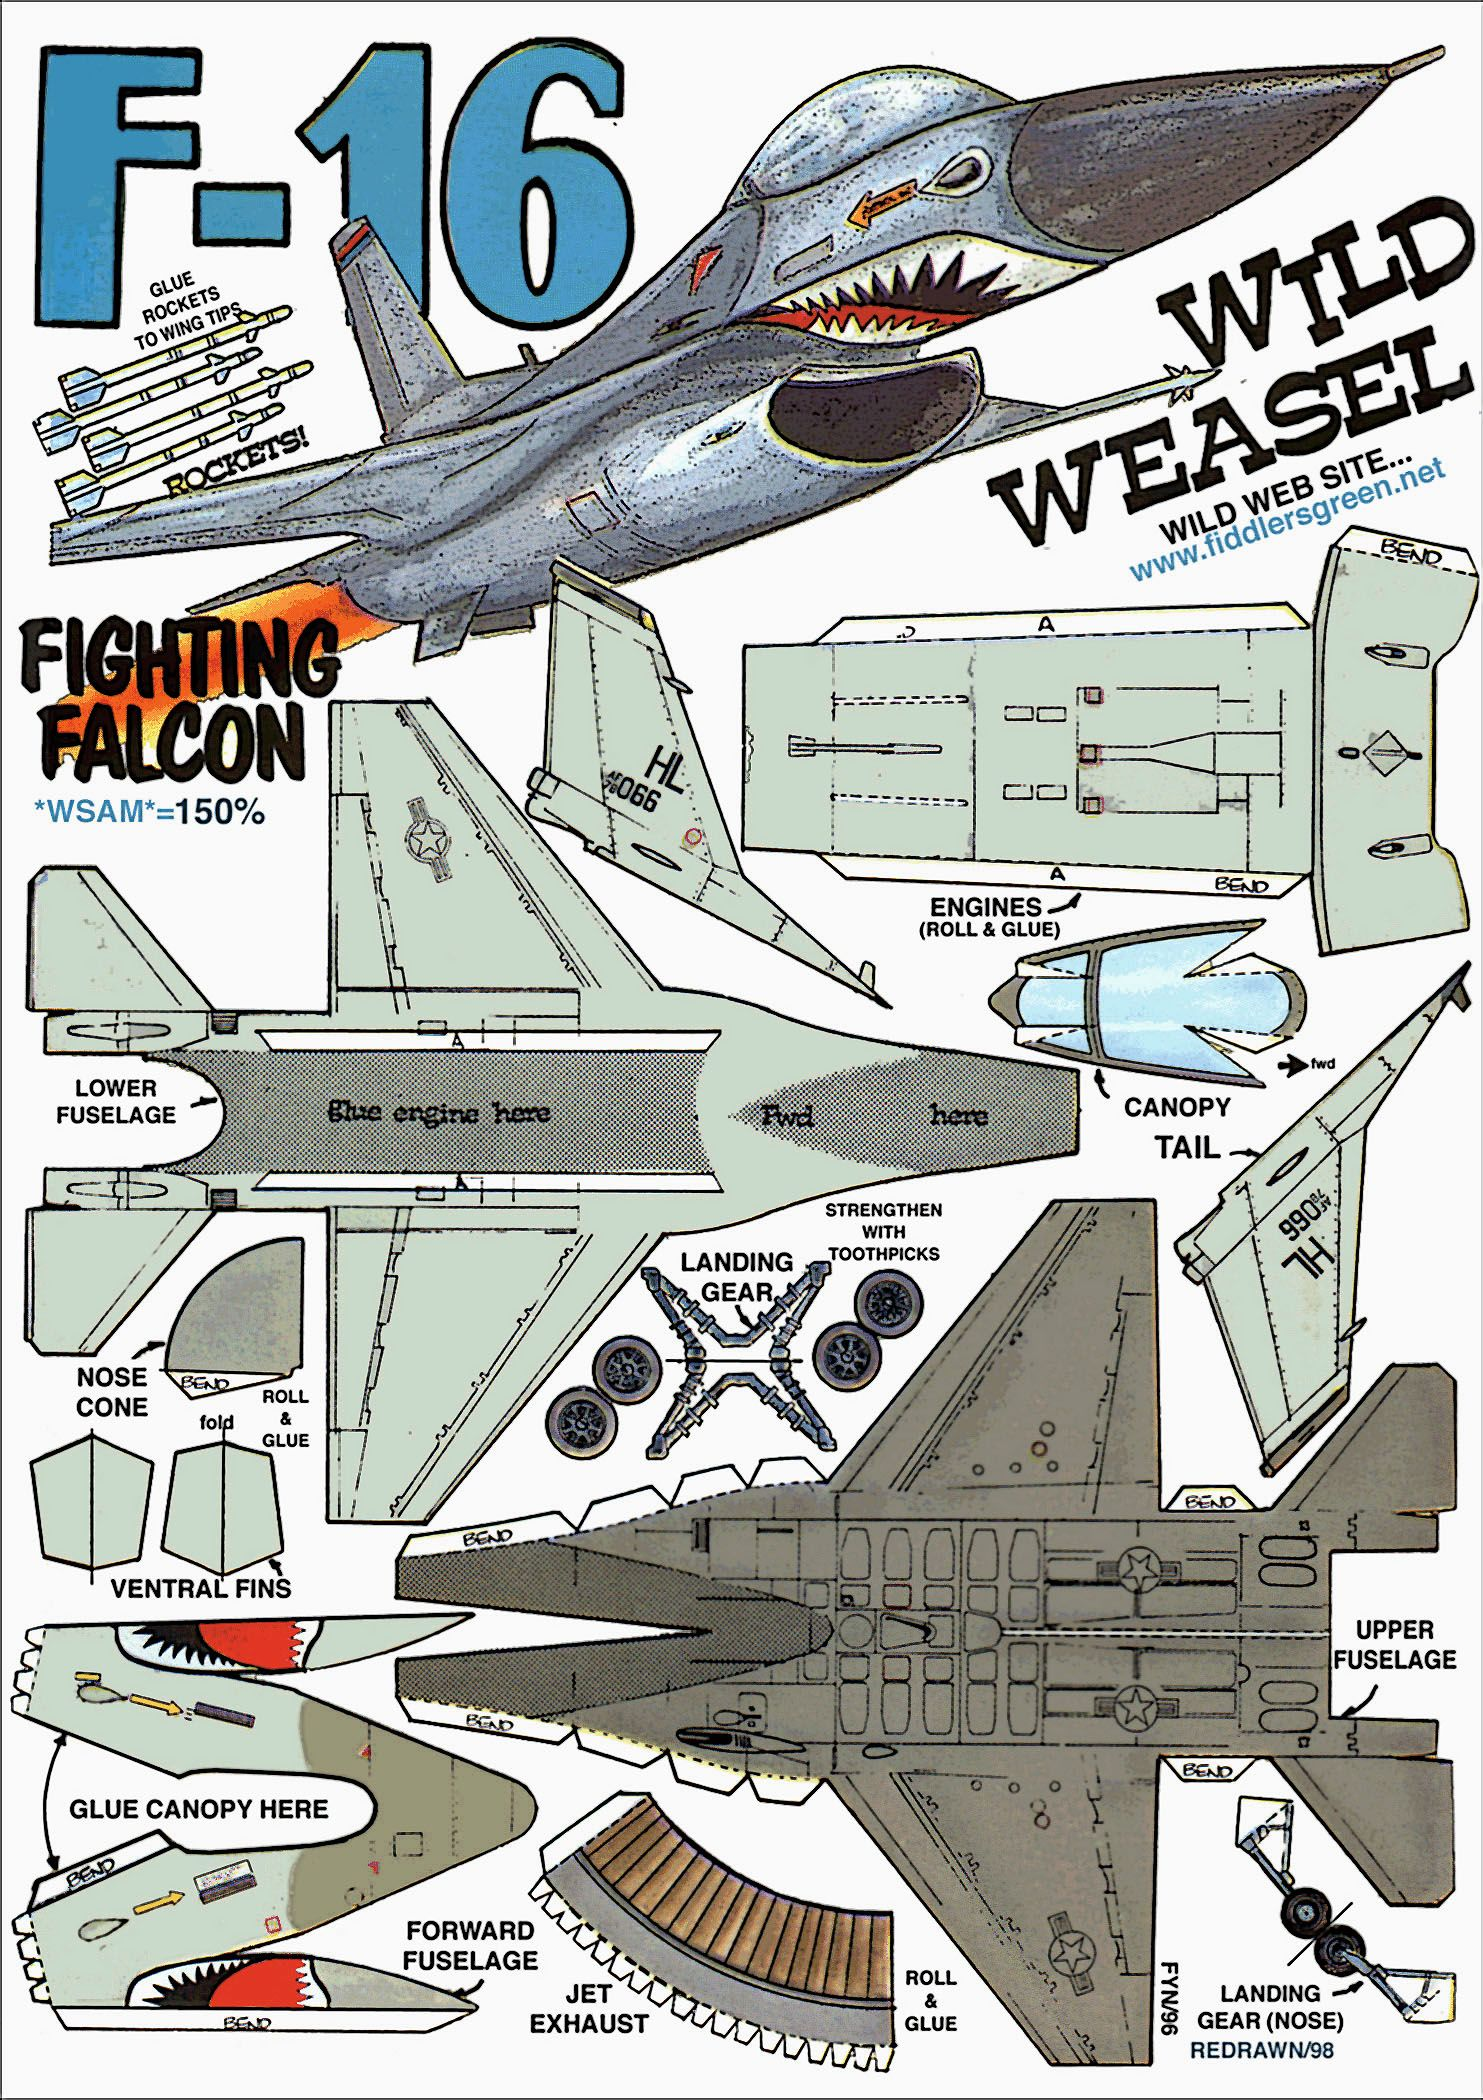 F 16 fighting falcon instruction http www for Net making instructions